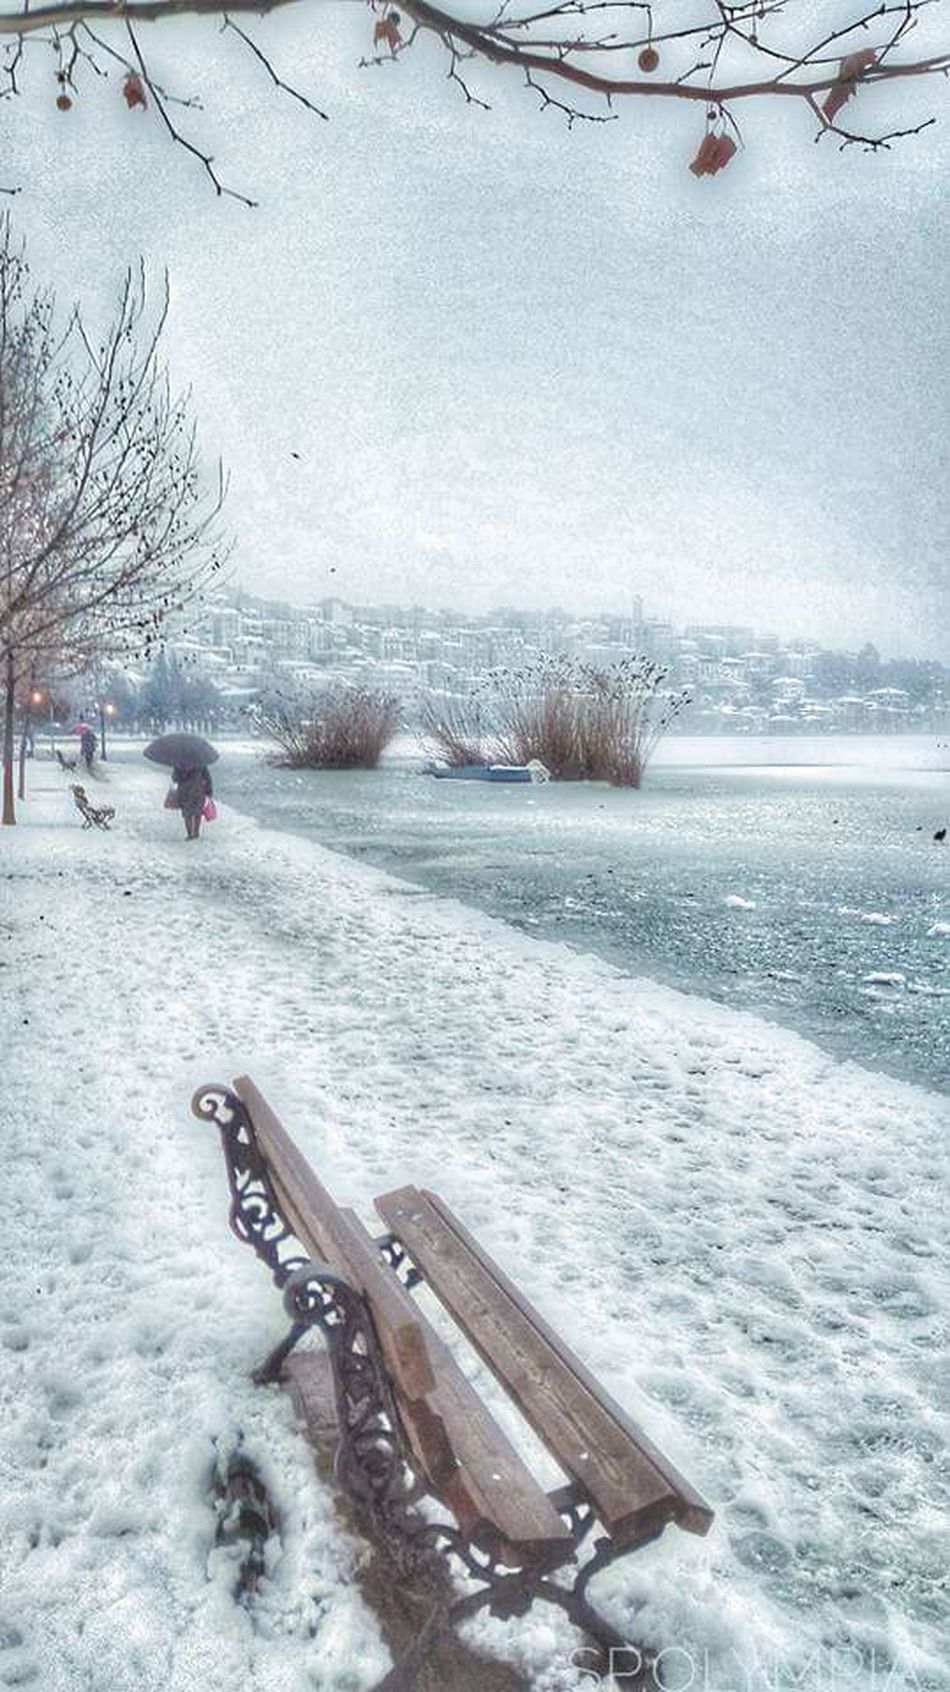 Kastoria winter2017 Winter Cold Temperature Snow Nature Beauty In Nature Weather Traditional Culture Enjoying The View Hellas Travels Travellers City View  GREECE ♥♥ Travelling Streetphotography Nature Famous Place Travel Photography Travel Destination View Travel Destinations Beauty In Nature Cultures Beautiful Nature Travel